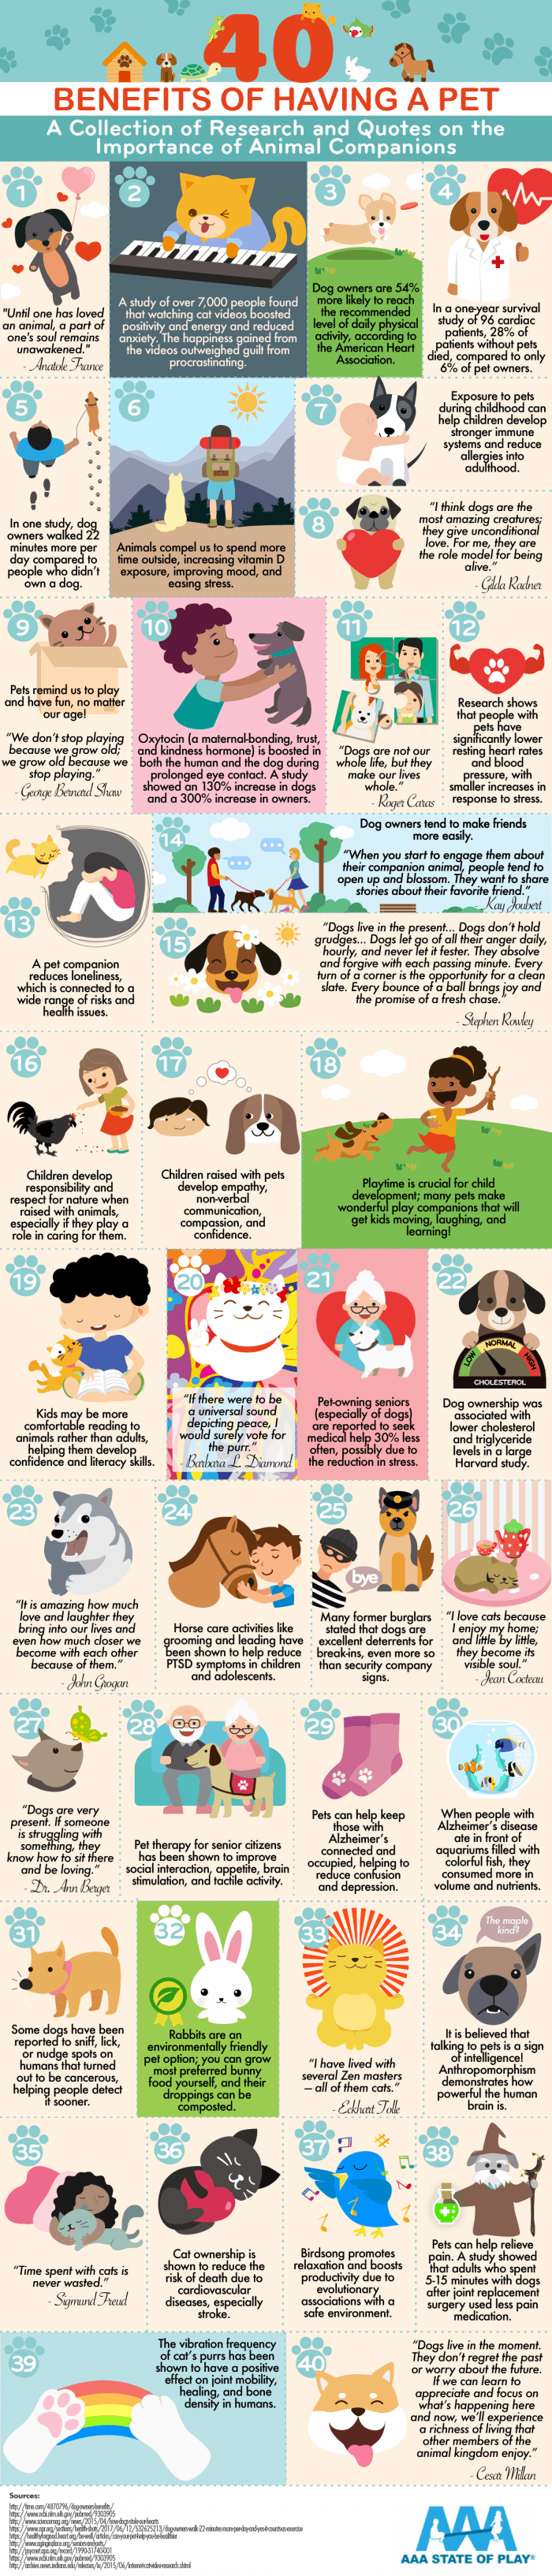 40 benefits of pet ownership